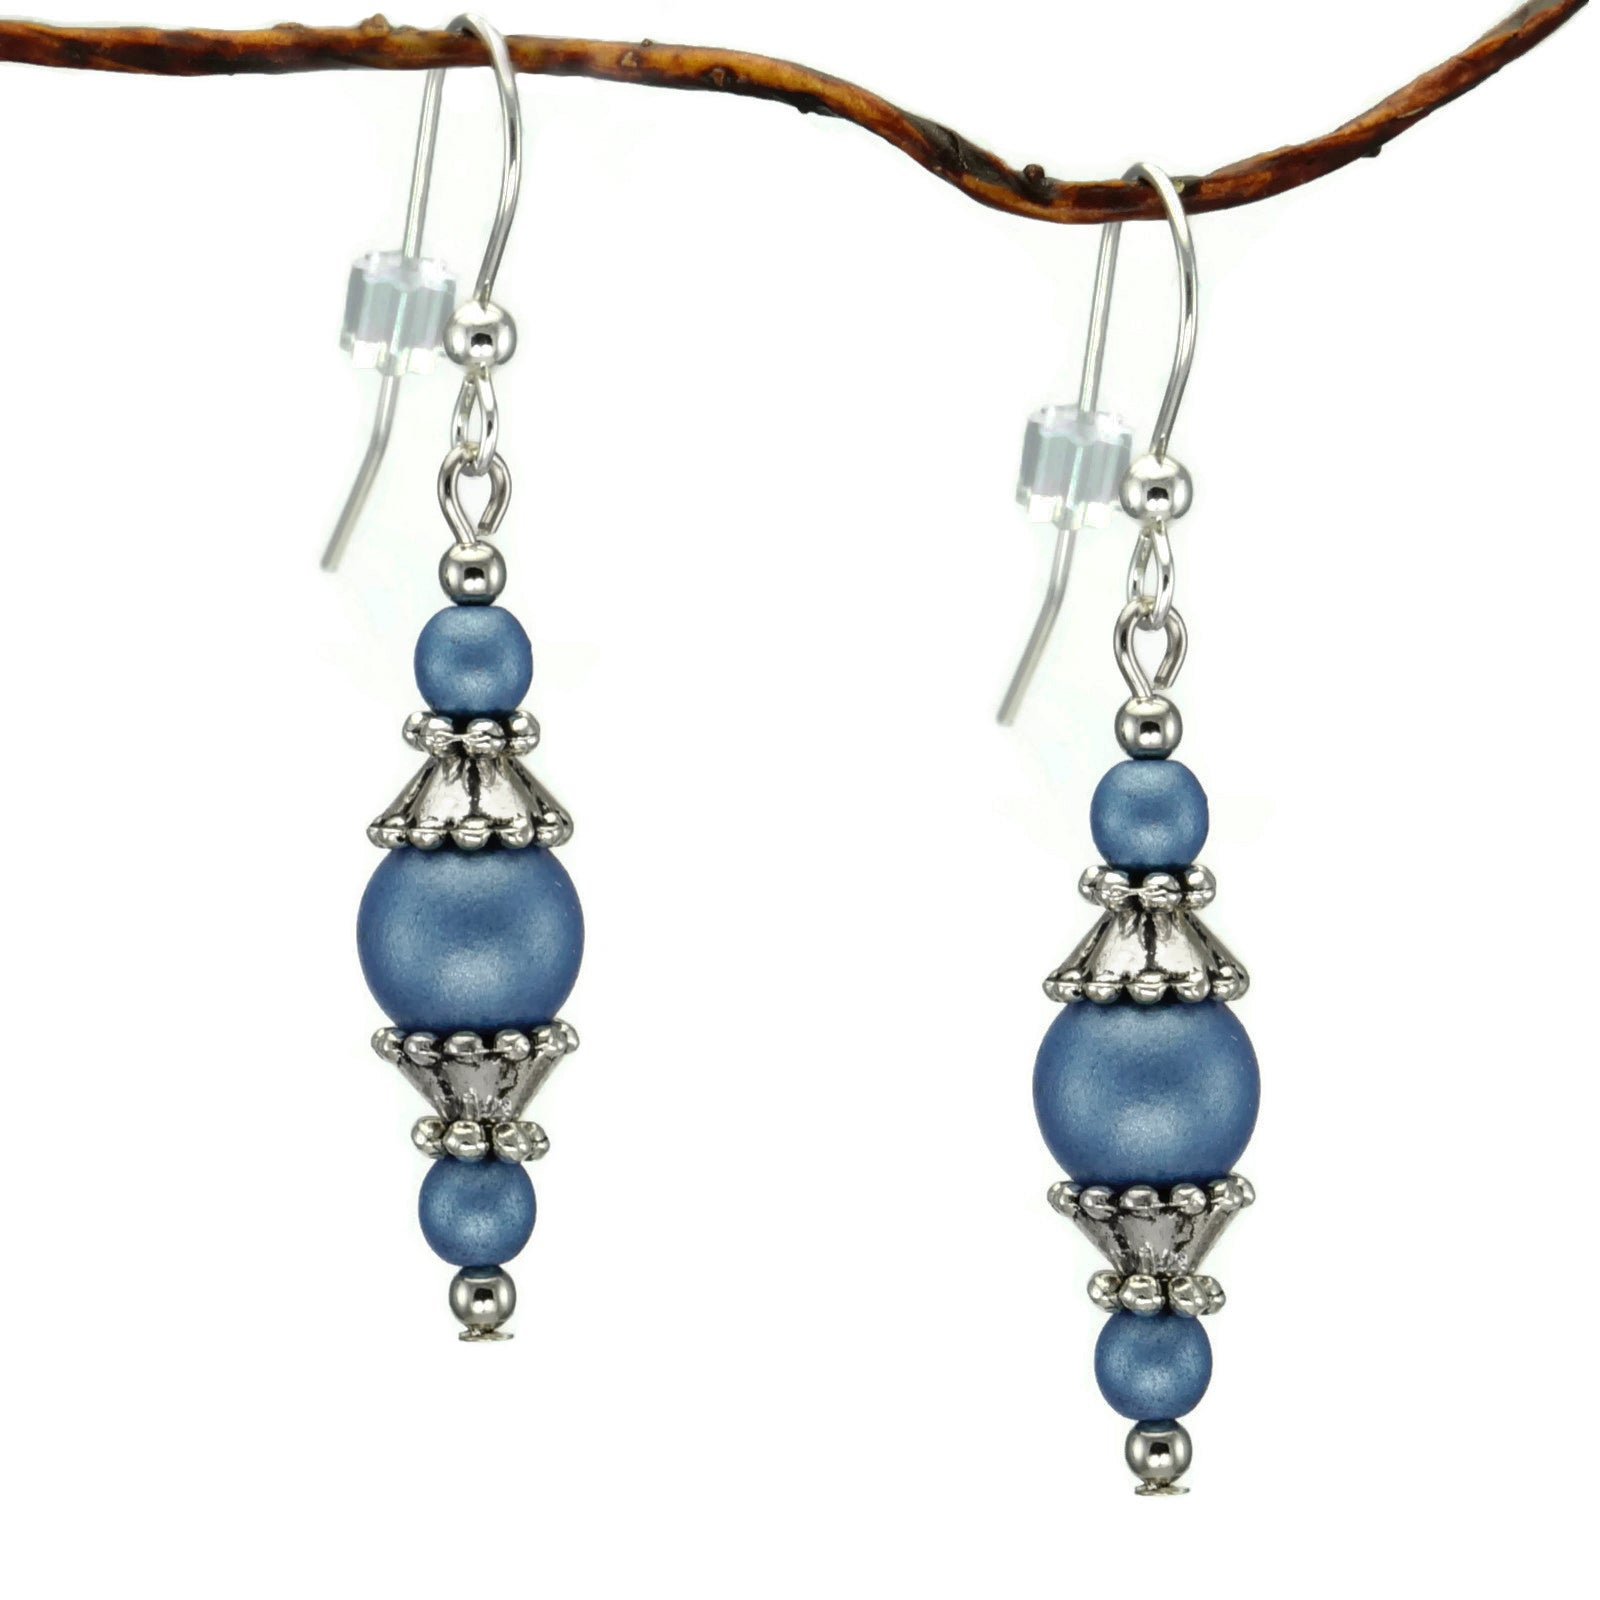 Jewelry by Dawn Round Blue Glass Beads With Pewter Accent...